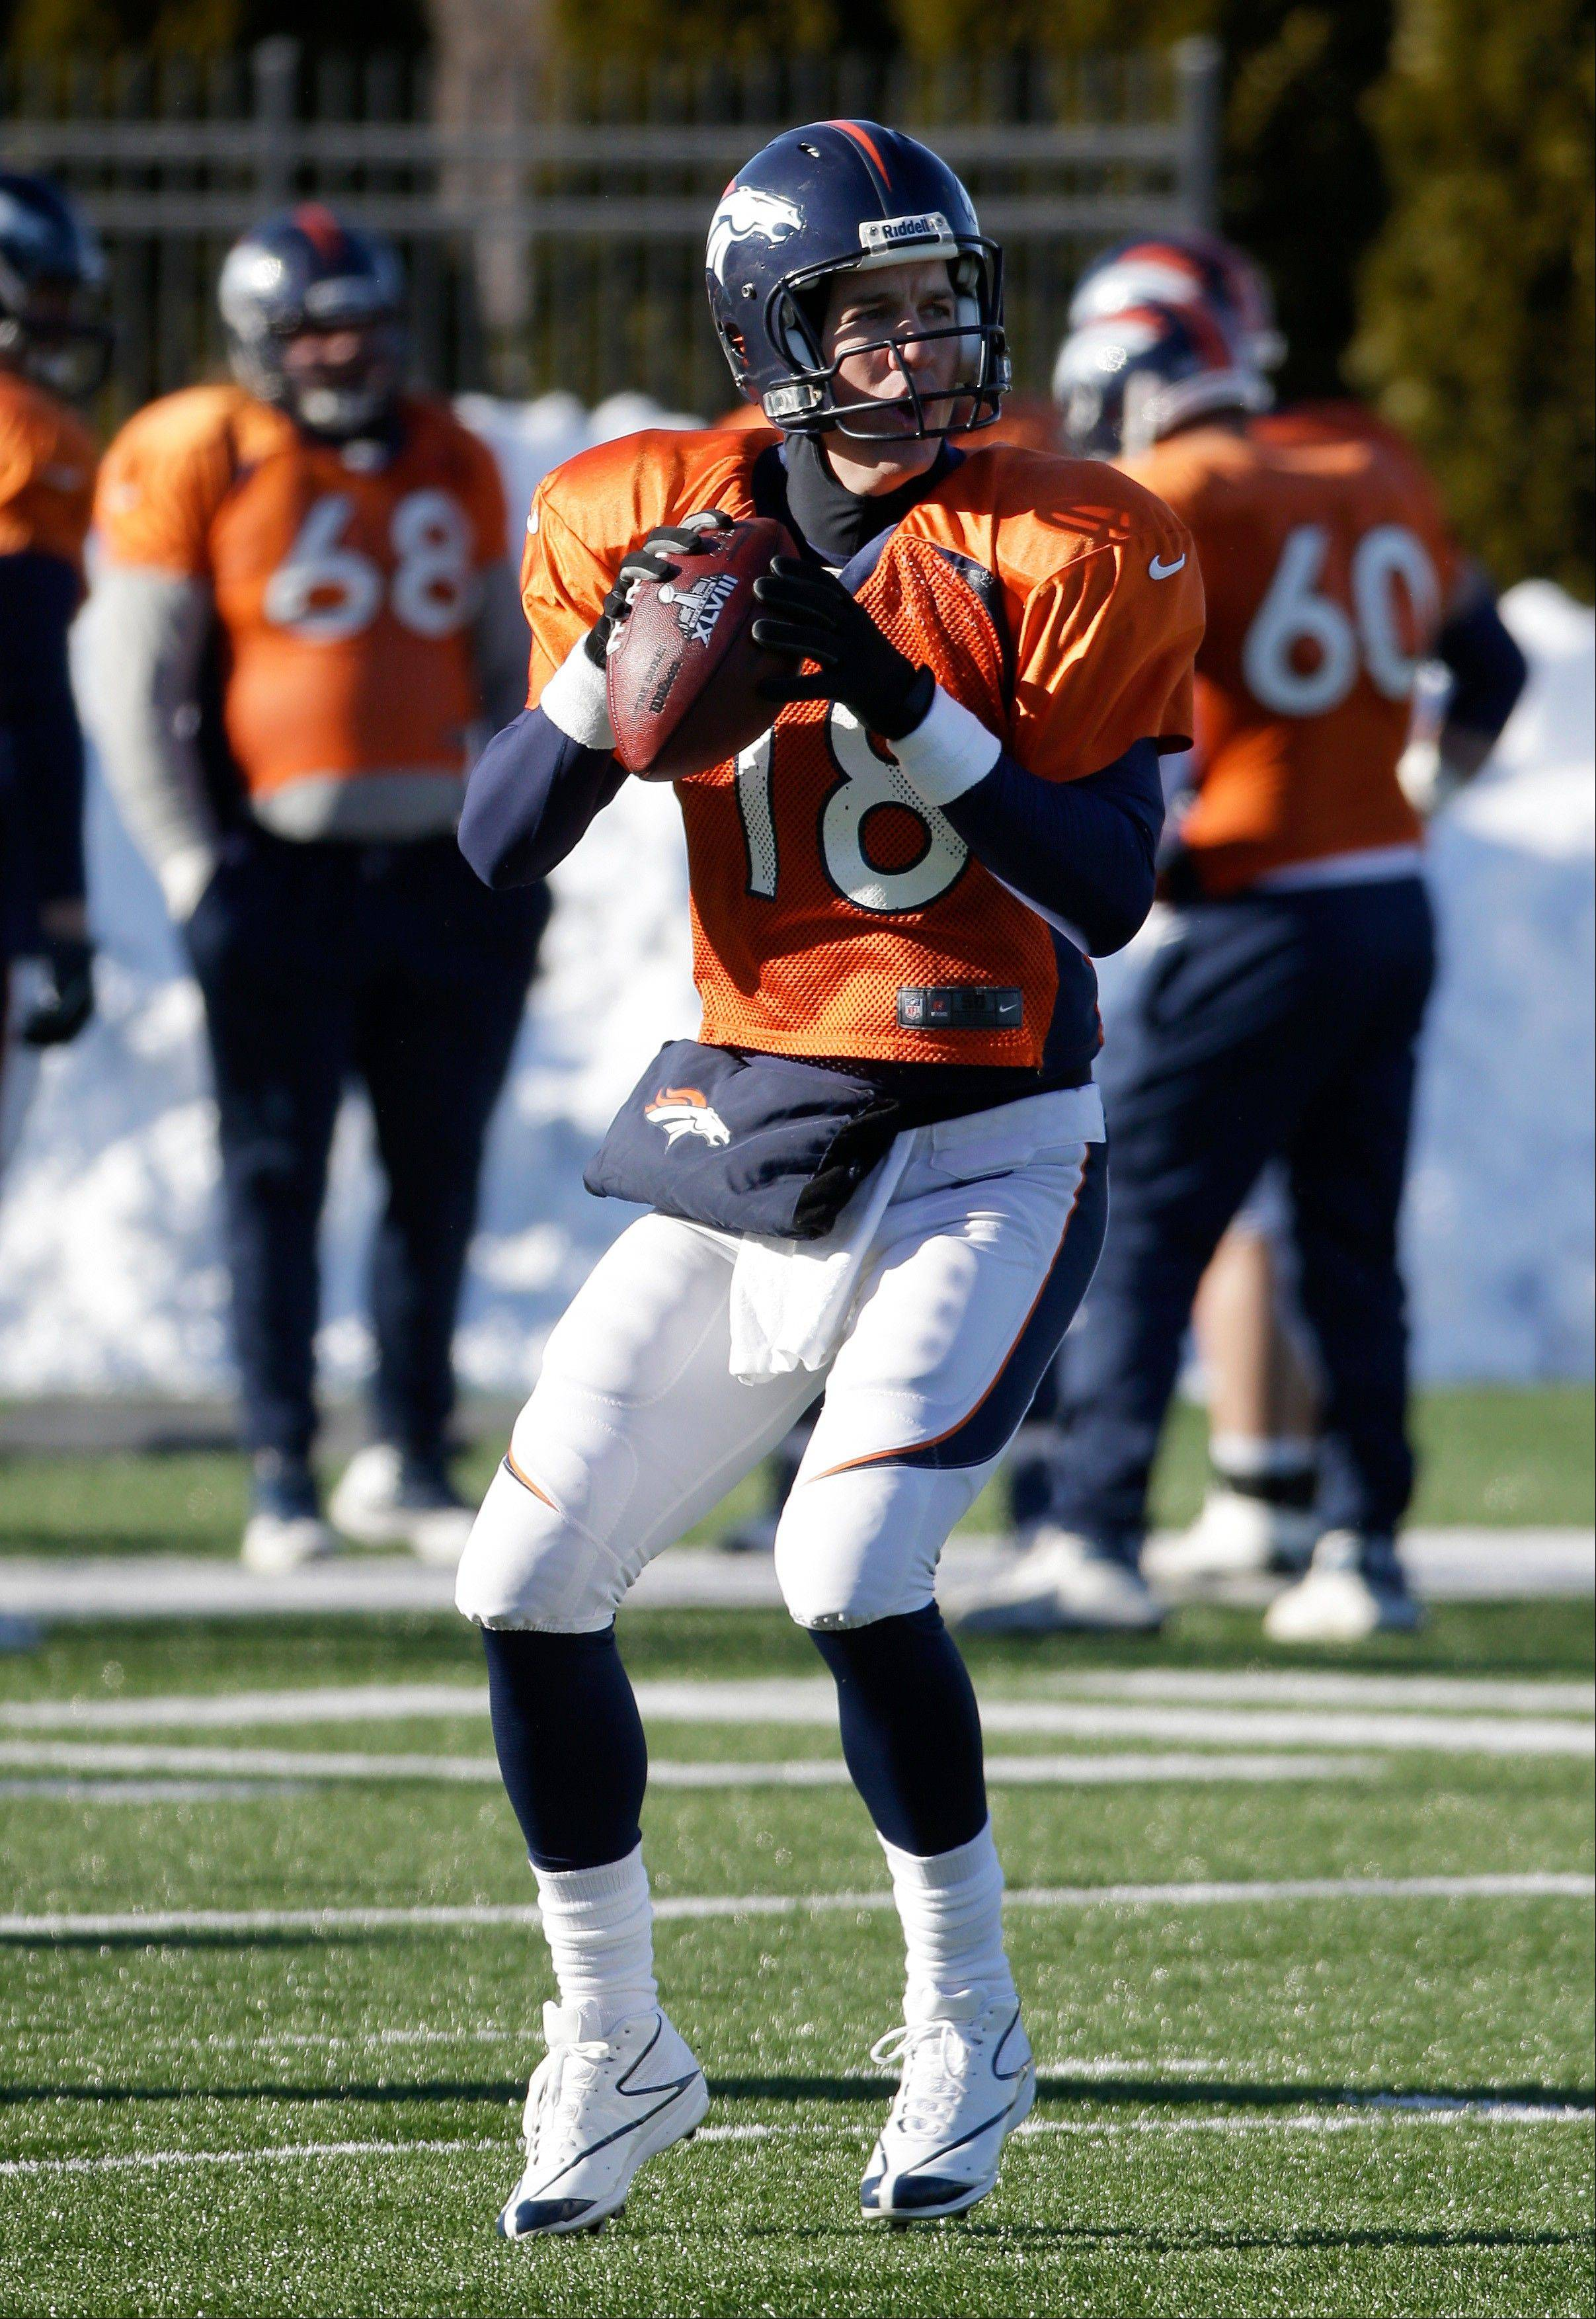 Denver Broncos quarterback Peyton Manning (18) passes during practice Wednesday, Jan. 29, 2014, in Florham Park, N.J. The Broncos are scheduled to play the Seattle Seahawks in the NFL Super Bowl XLVIII football game Sunday, Feb. 2, in East Rutherford, N.J.